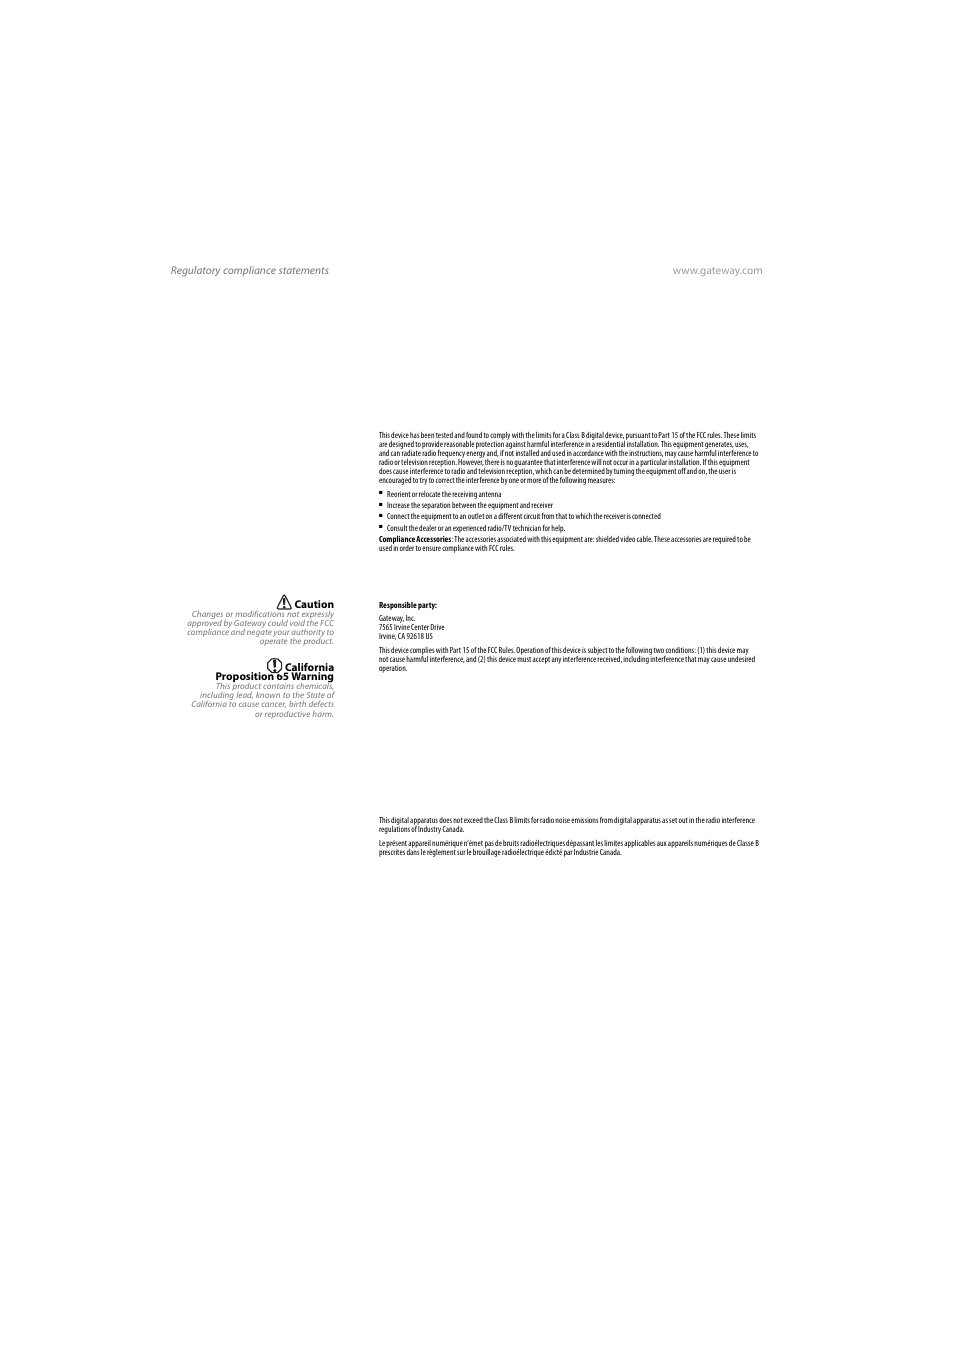 Regulatory compliance statements, United states of america, Canada |  Gateway VX765 User Manual |